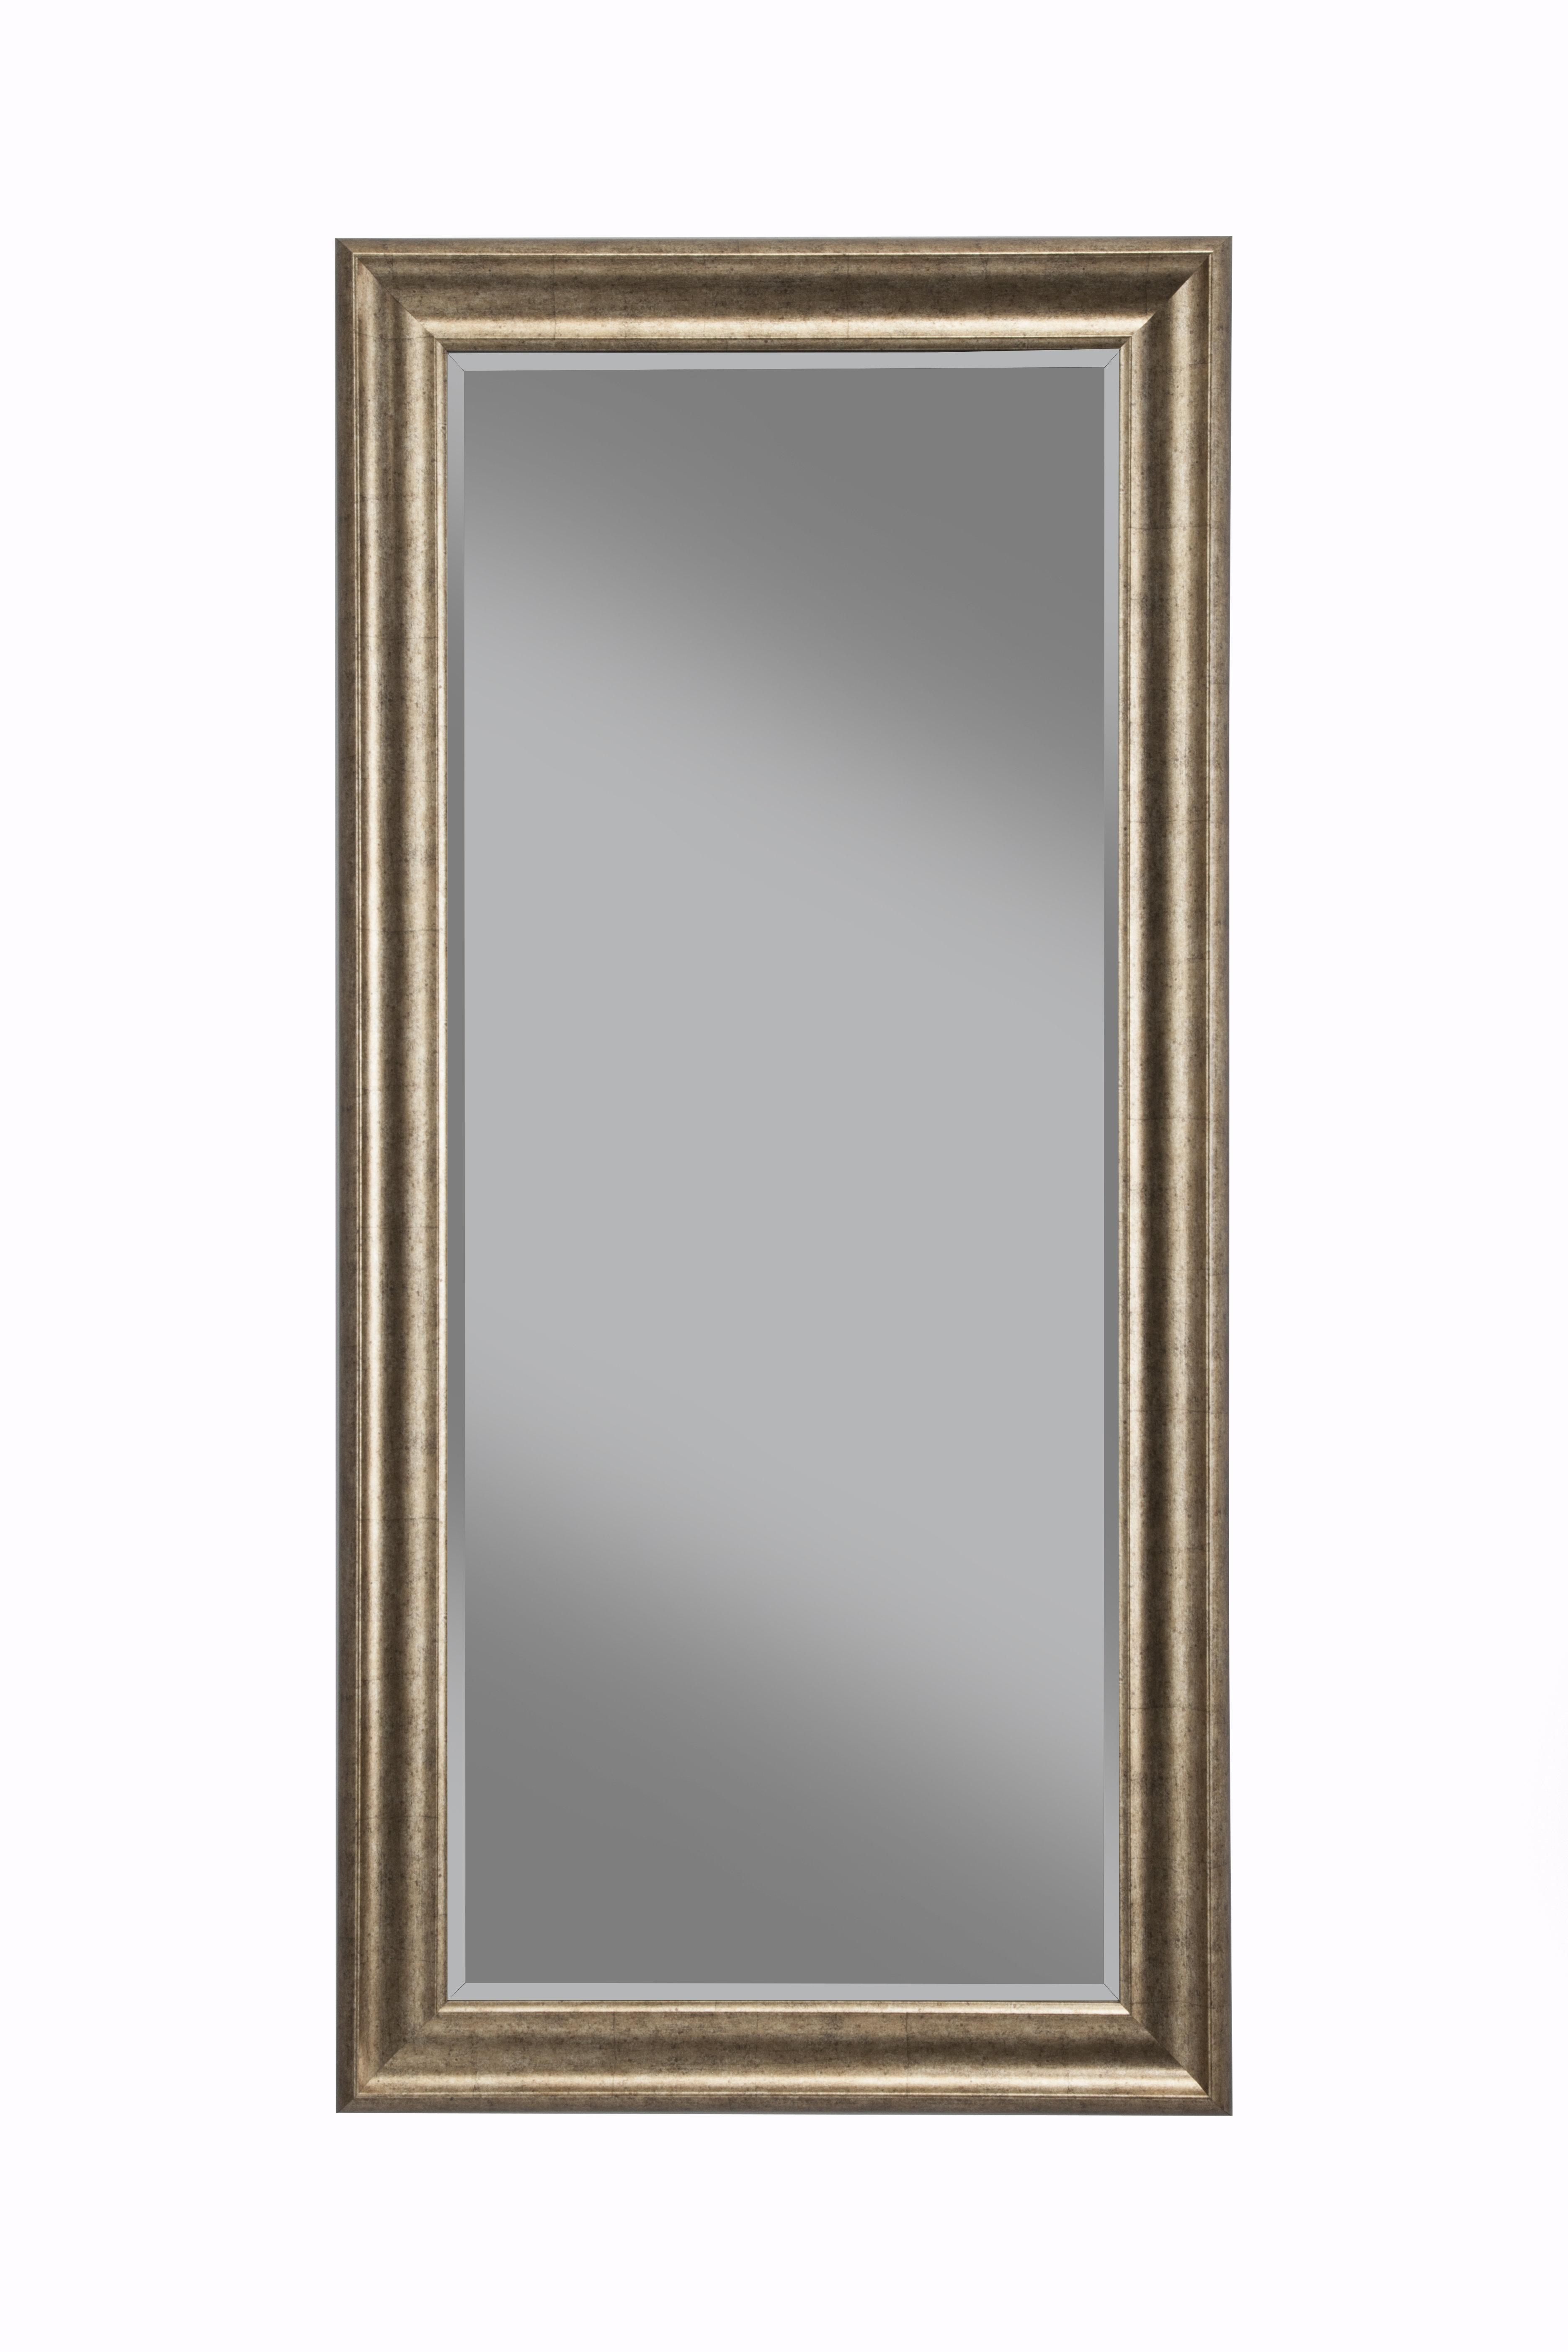 Angled Wall Mirrors In Best And Newest Modern Gold Wall Mirrors (View 3 of 20)